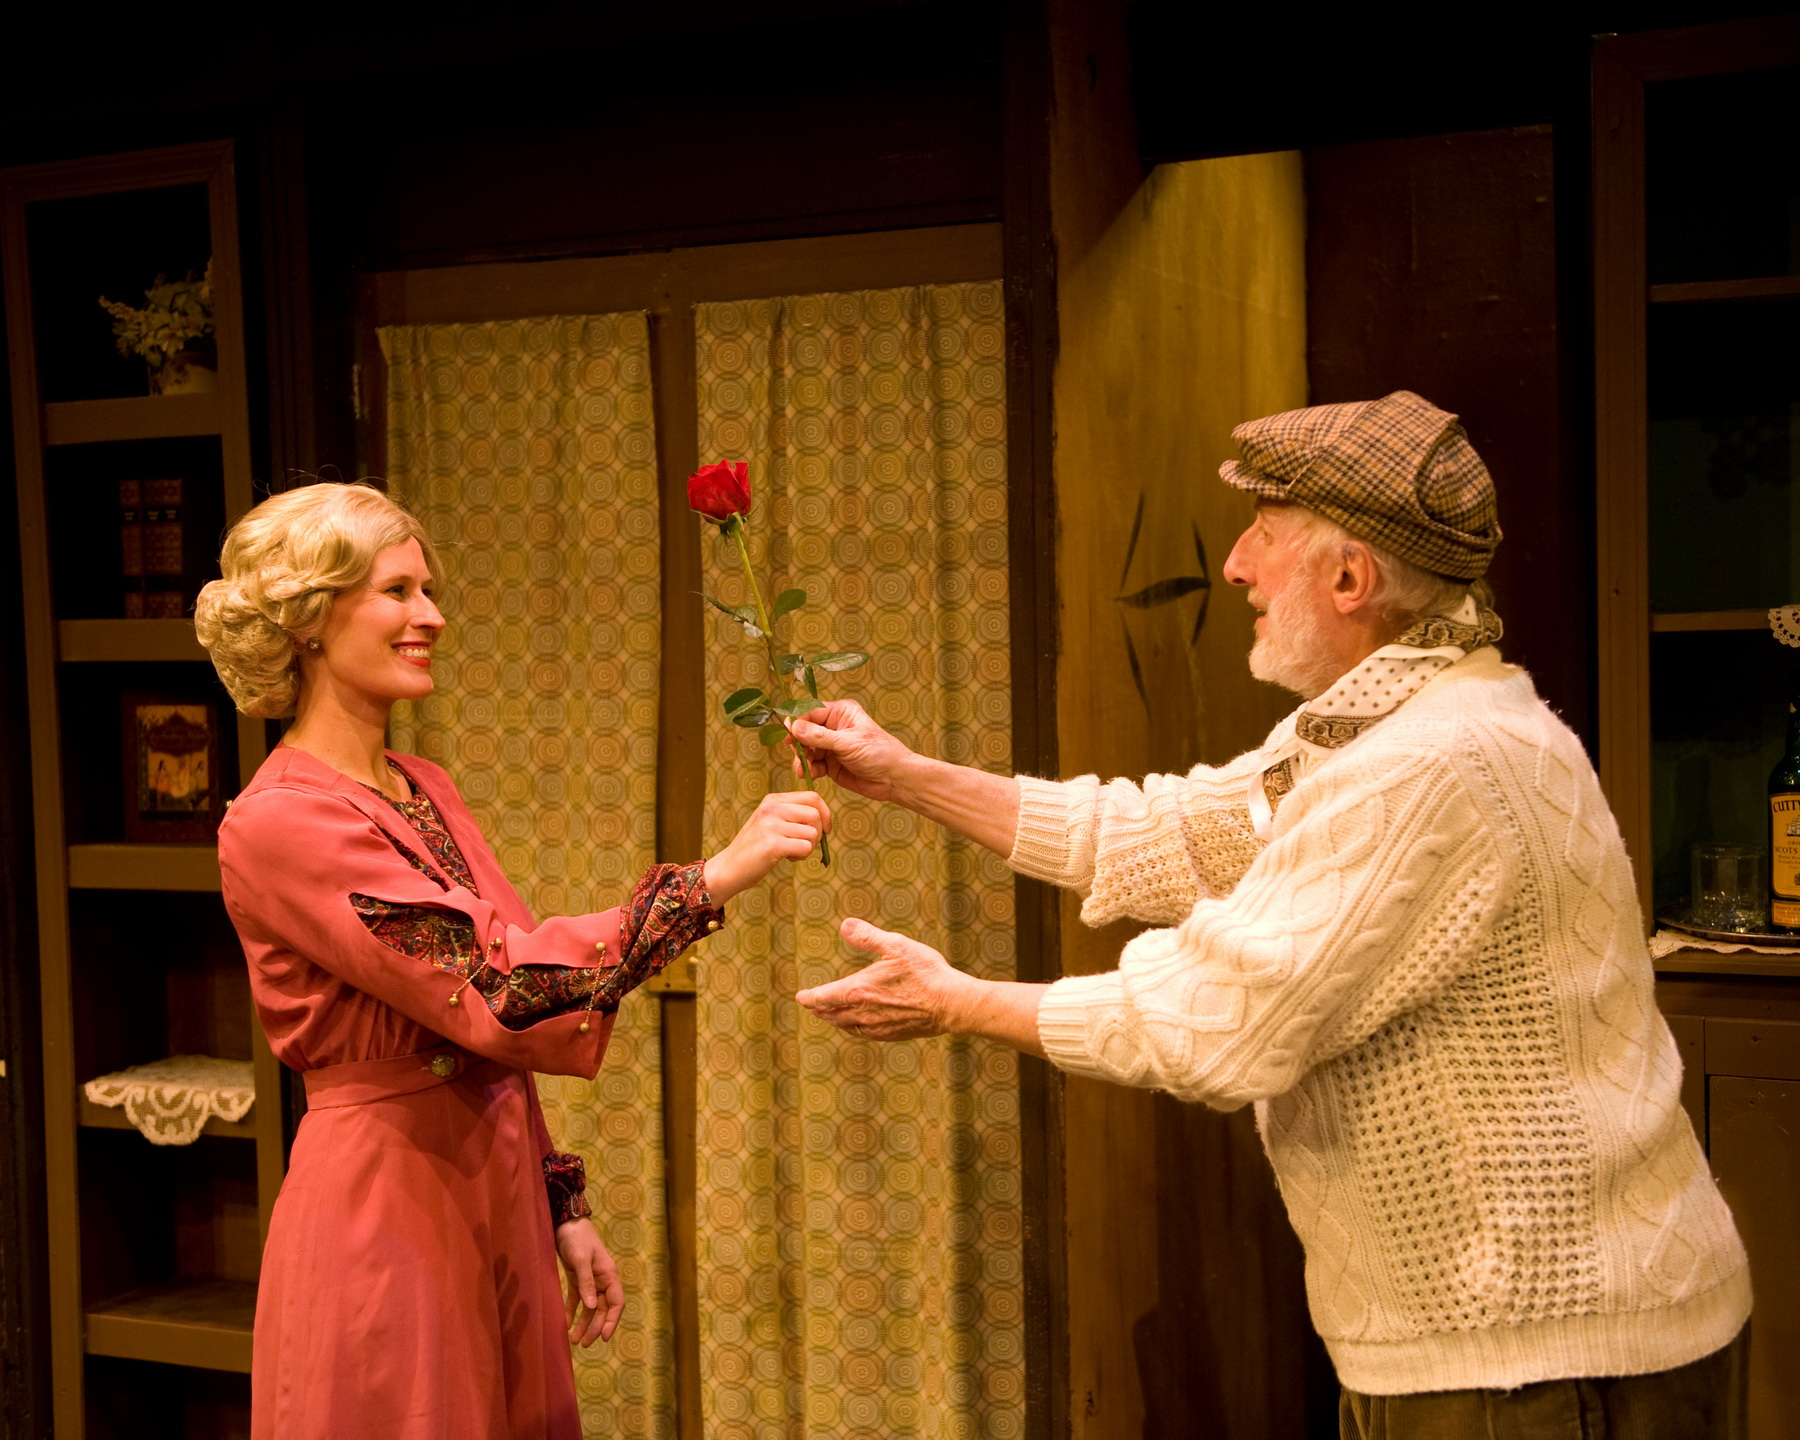 Jill Kenderes as Cecily Harrington and Raymond E. Cosma, Jr. as Hodgson